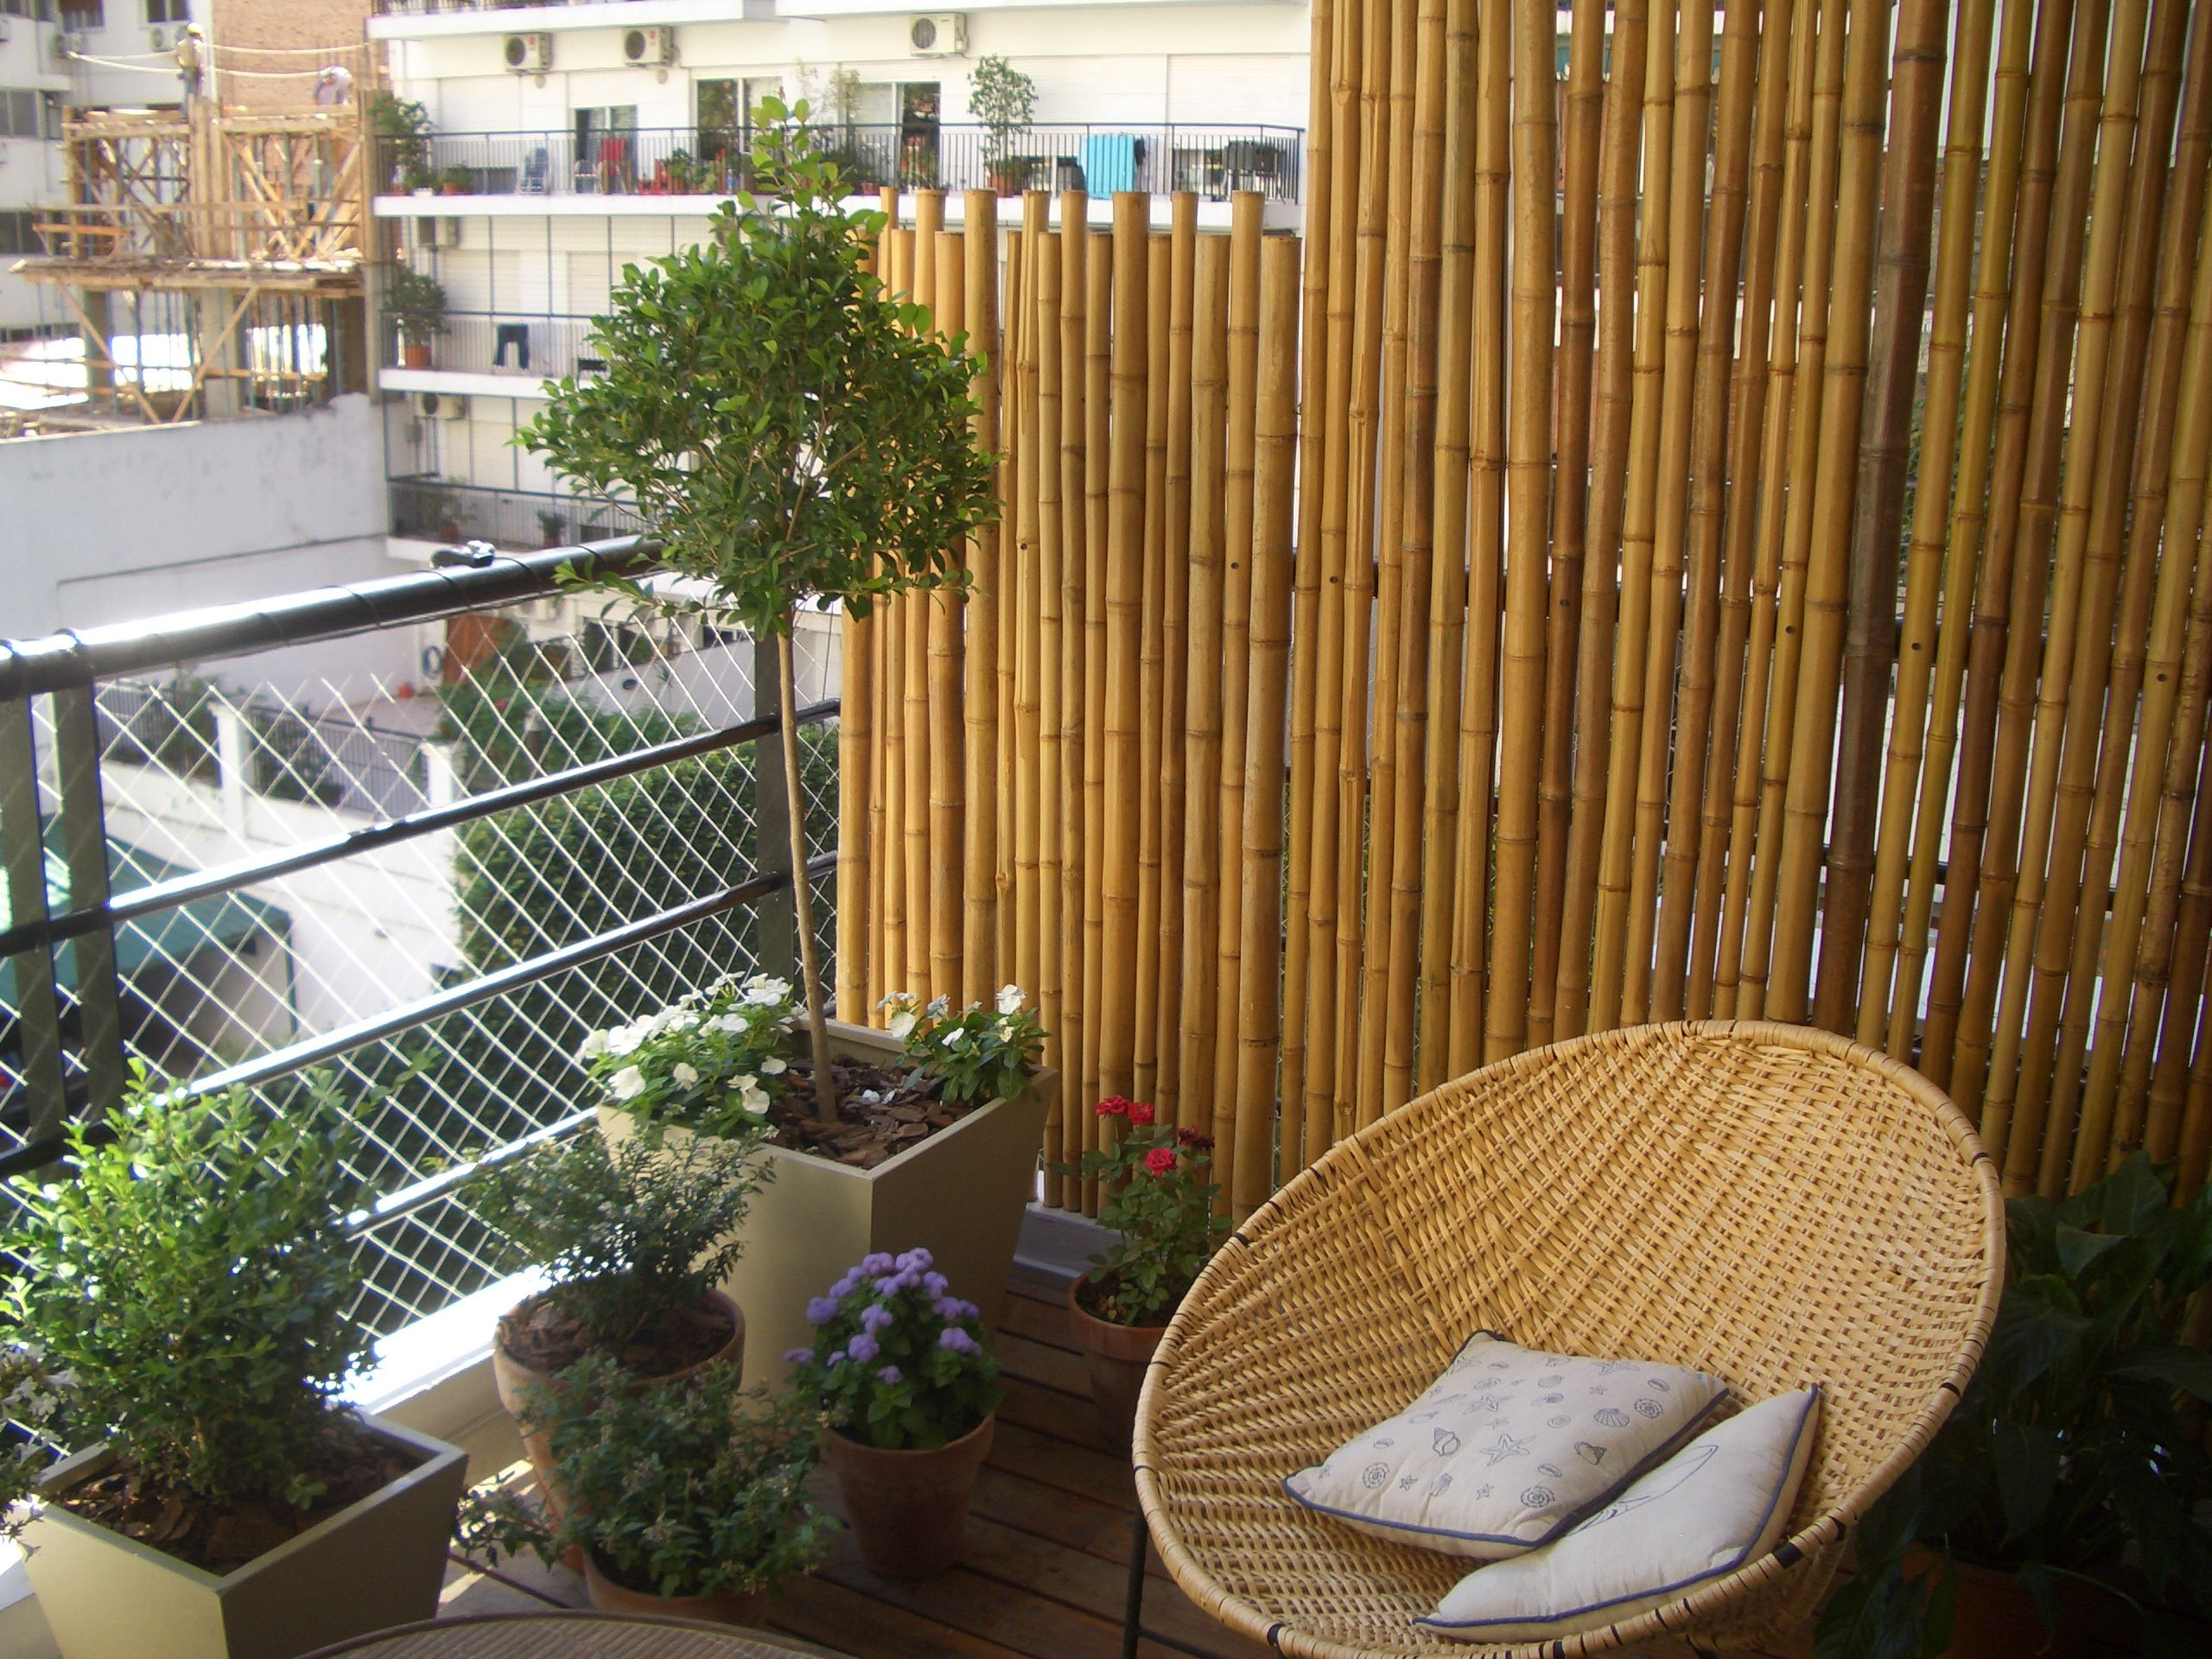 Balcon con ca as exteriores pinterest ca as - Canas de bambu decoracion ...